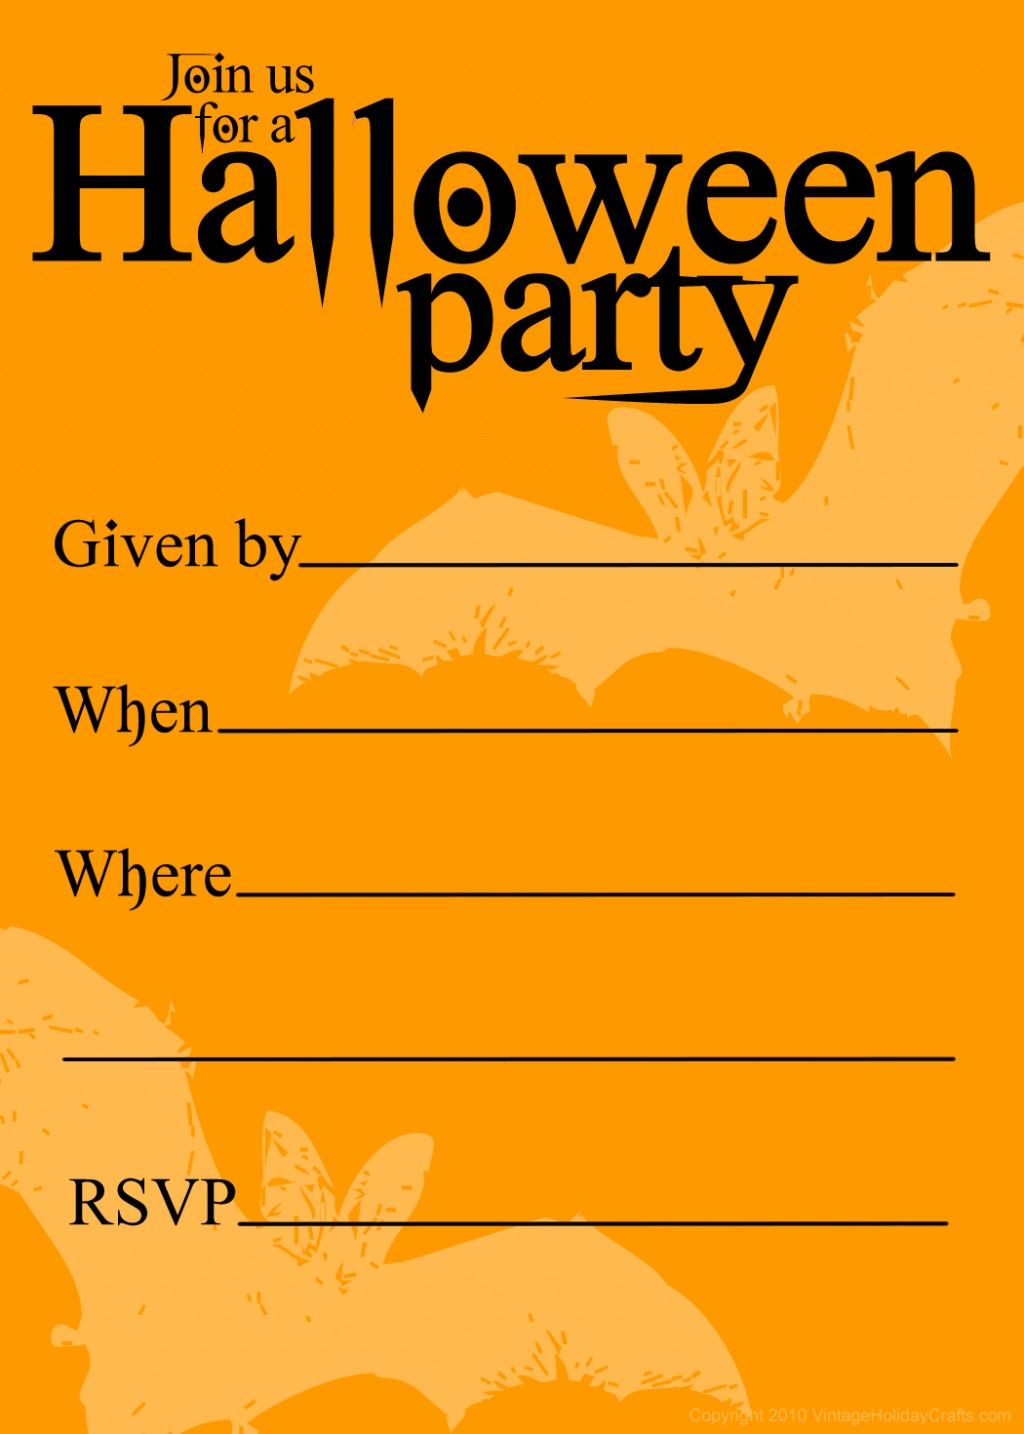 Free Printable Halloween Birthday Invitations Templates – Free Printable Halloween Party Invitations Templates